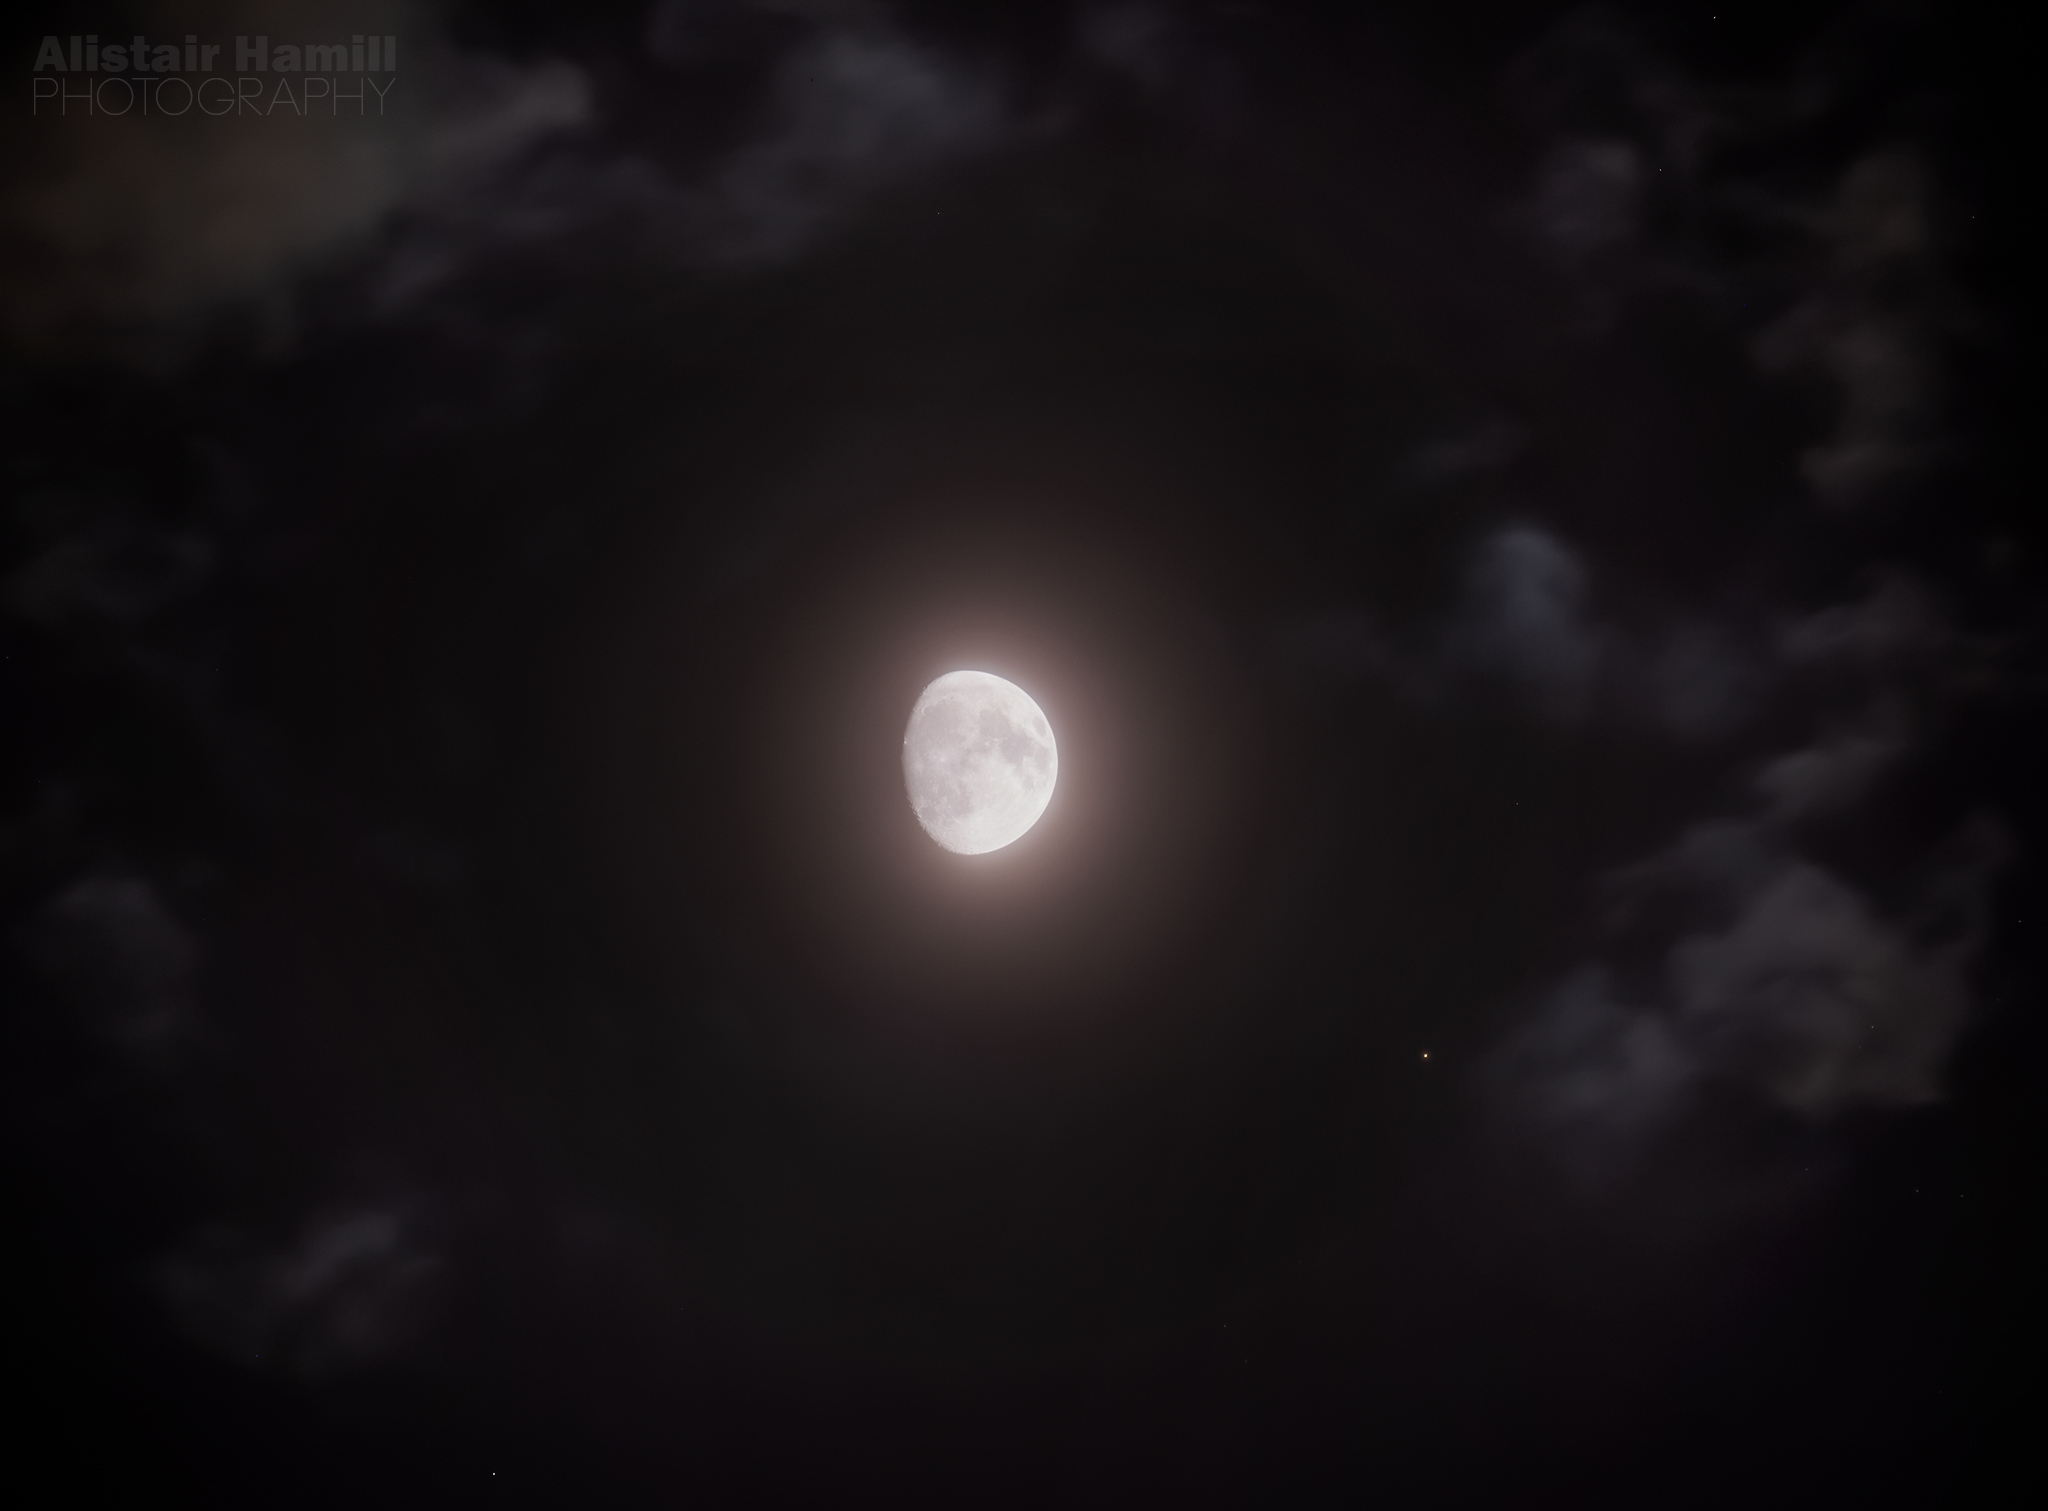 The Moon and Aldebaran in close conjunction last night.